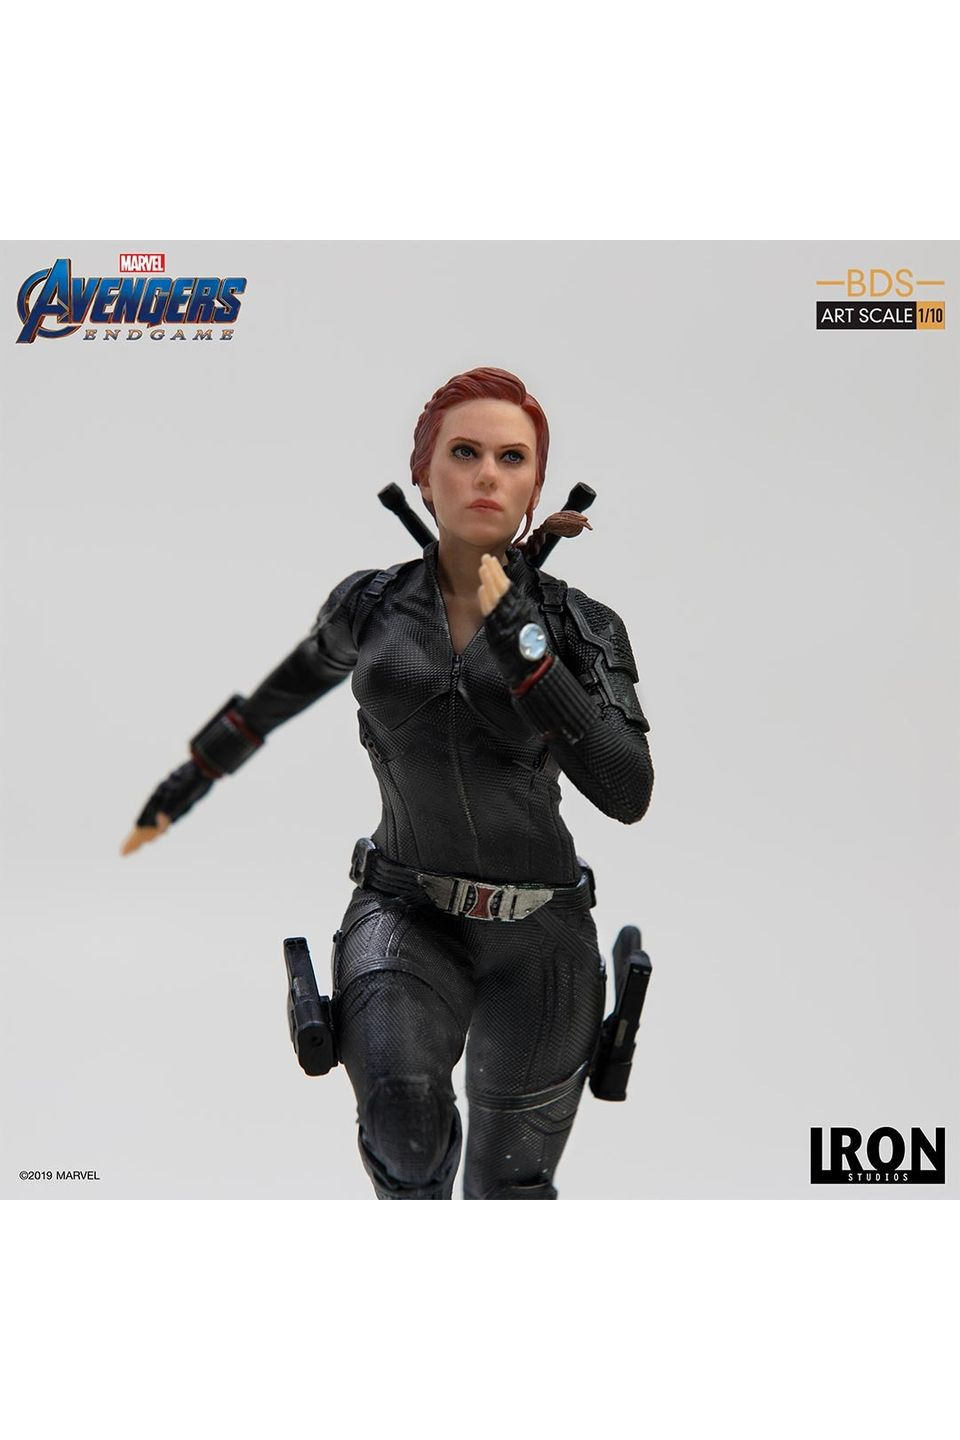 Estátua Estátua Black Widow - Avengers:Endgame Bds Art Scale Escala 1/10 - Iron Studios